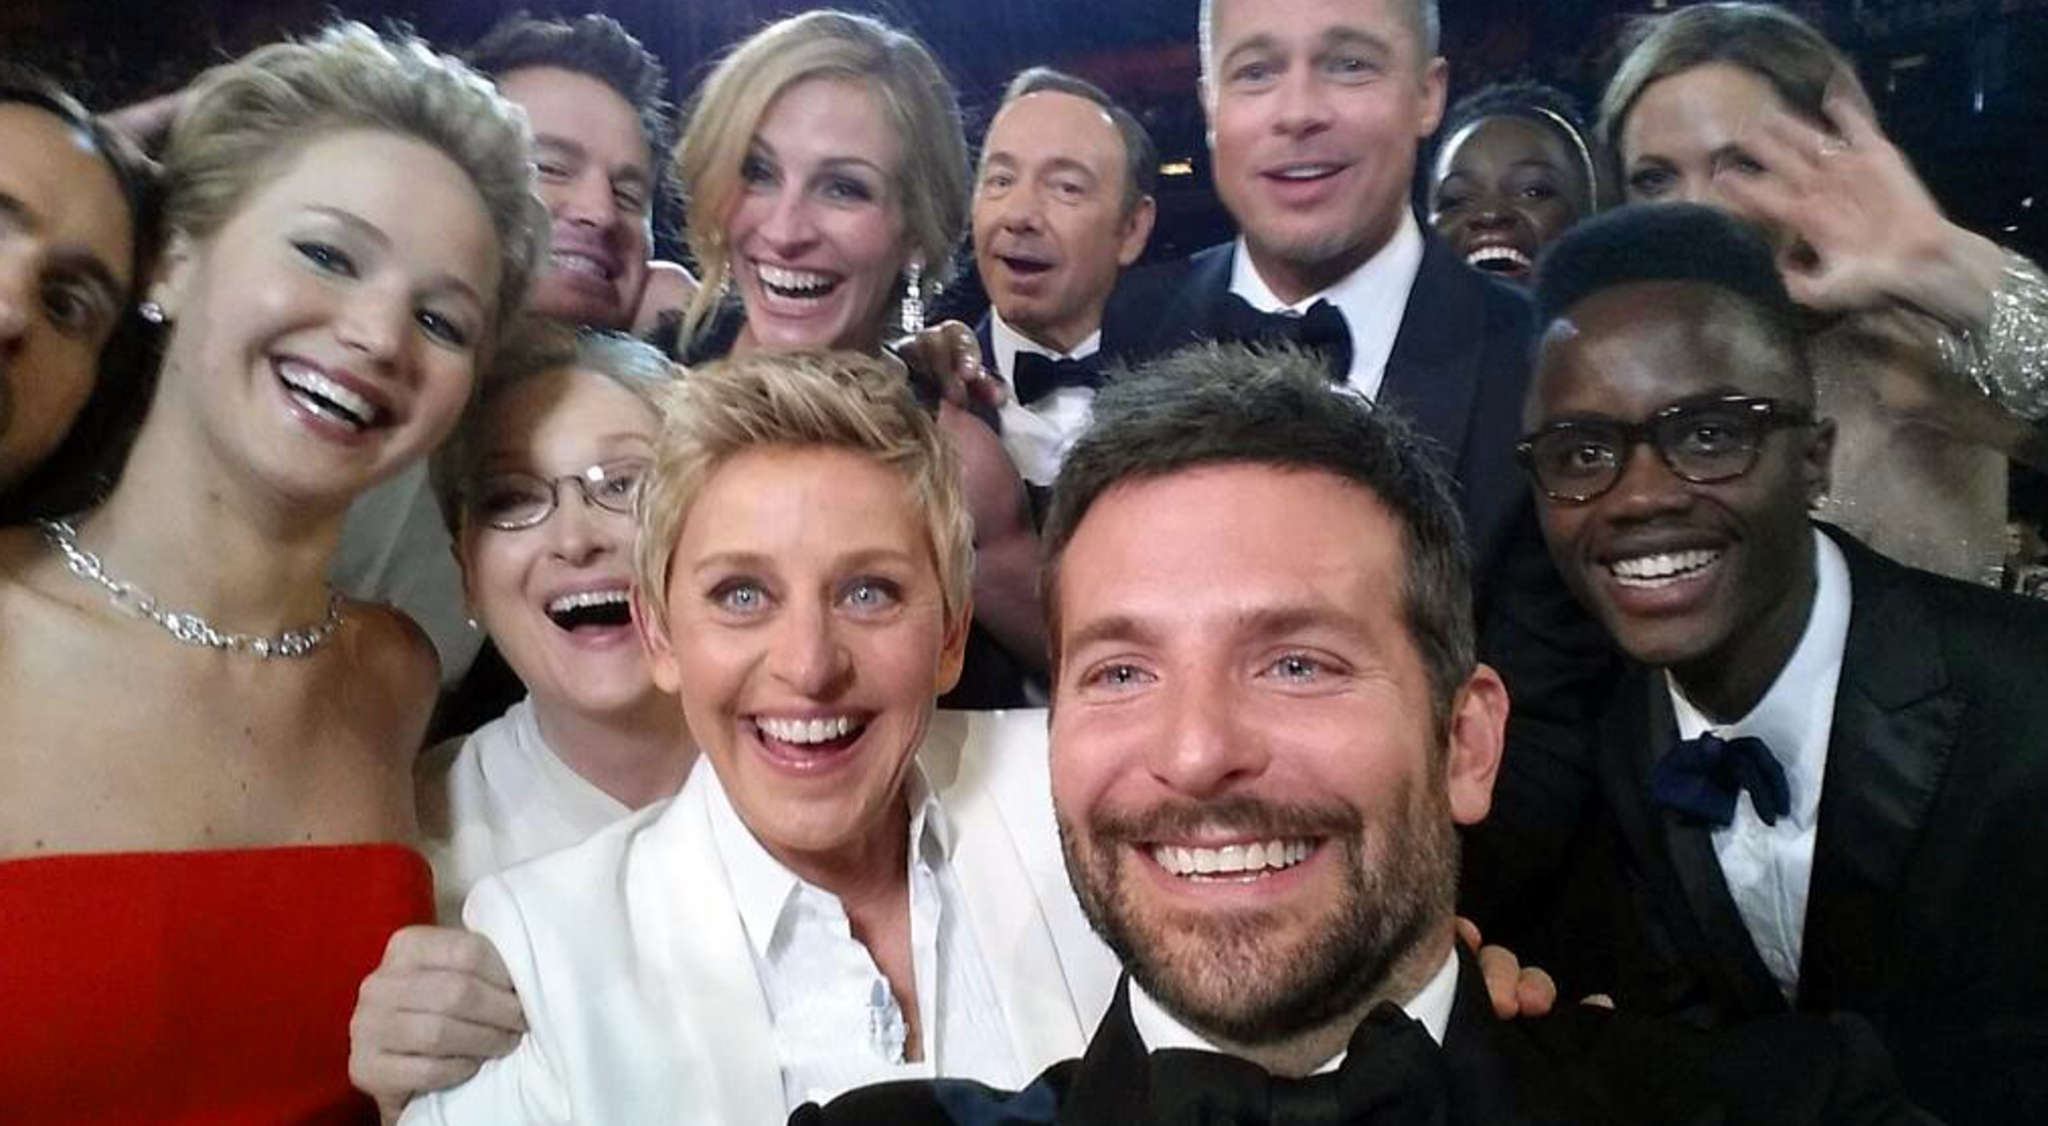 Oscar host Ellen DeGeneres´ selfie in 2014 with Hollywood heavyweights broke the Internet.